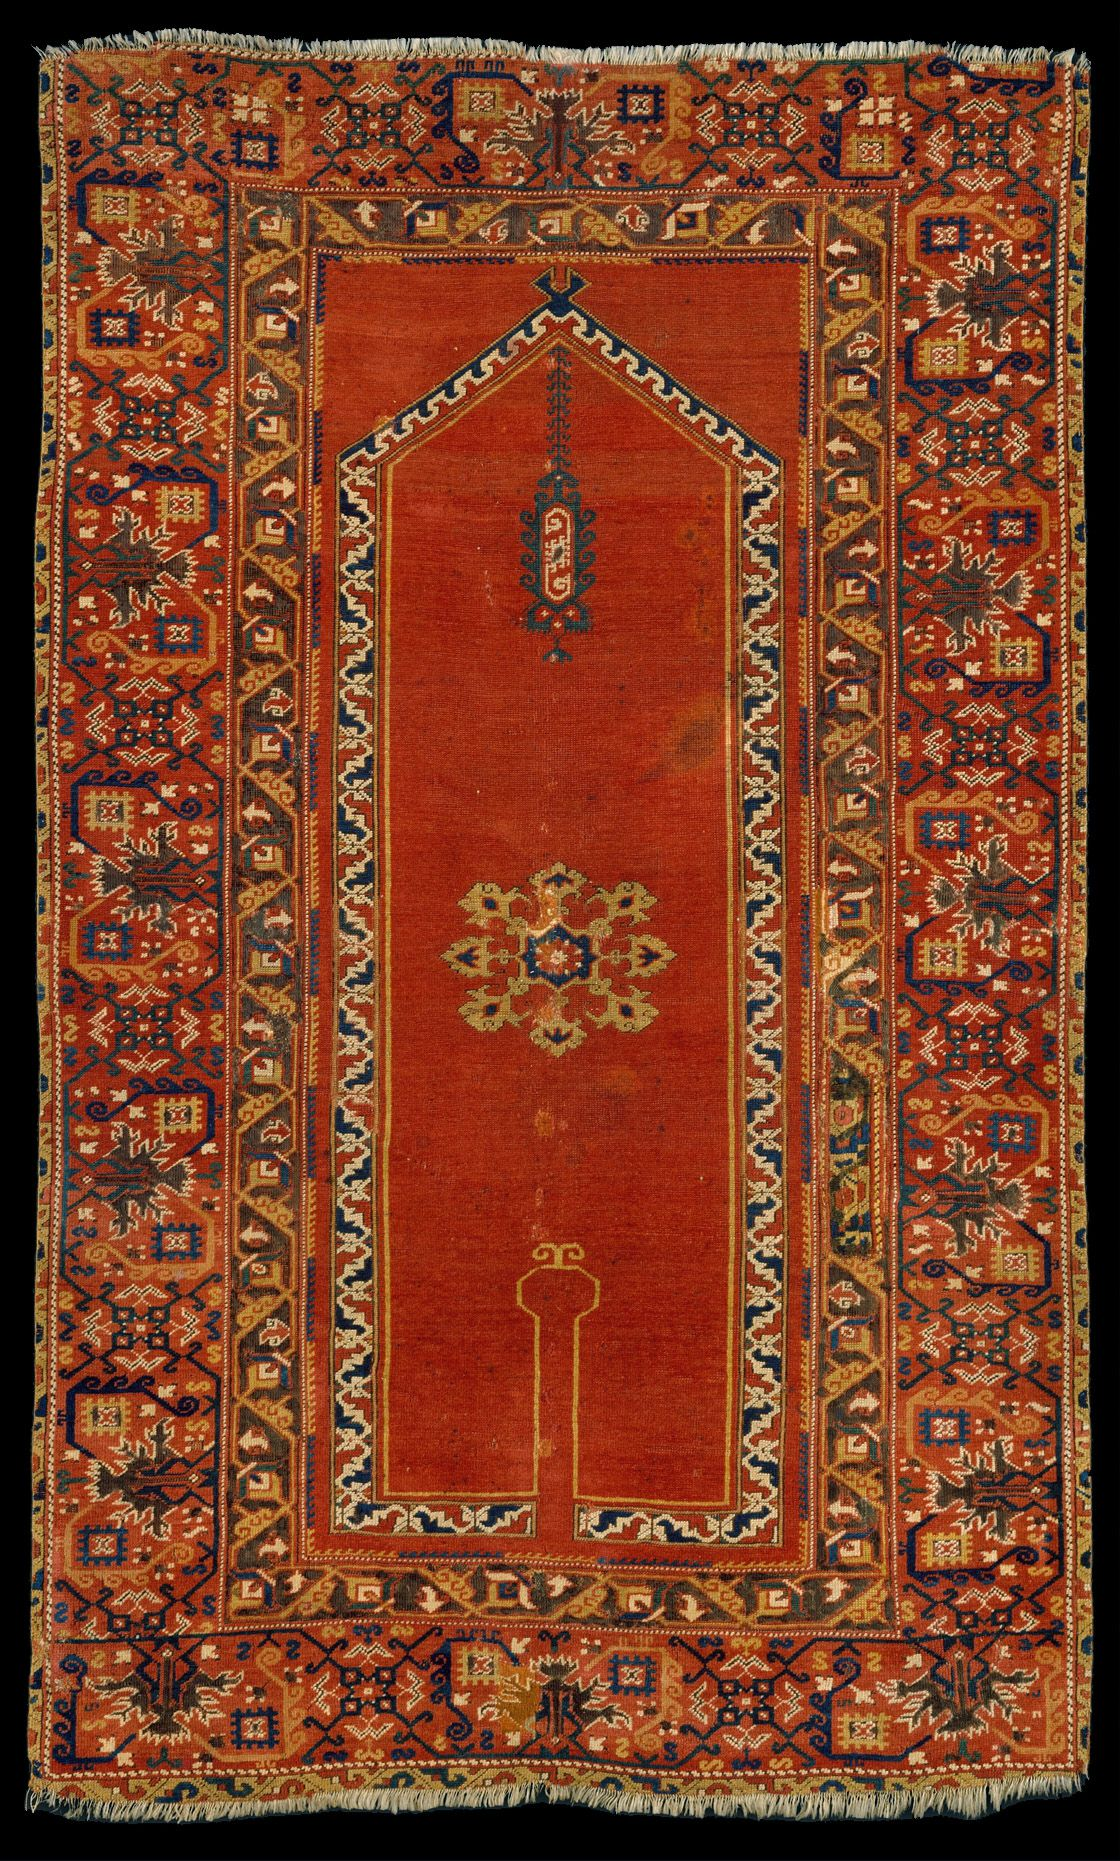 OTTOMAN CARPETS IN THE XVI - XVII CENTURIES (16-17TH ...